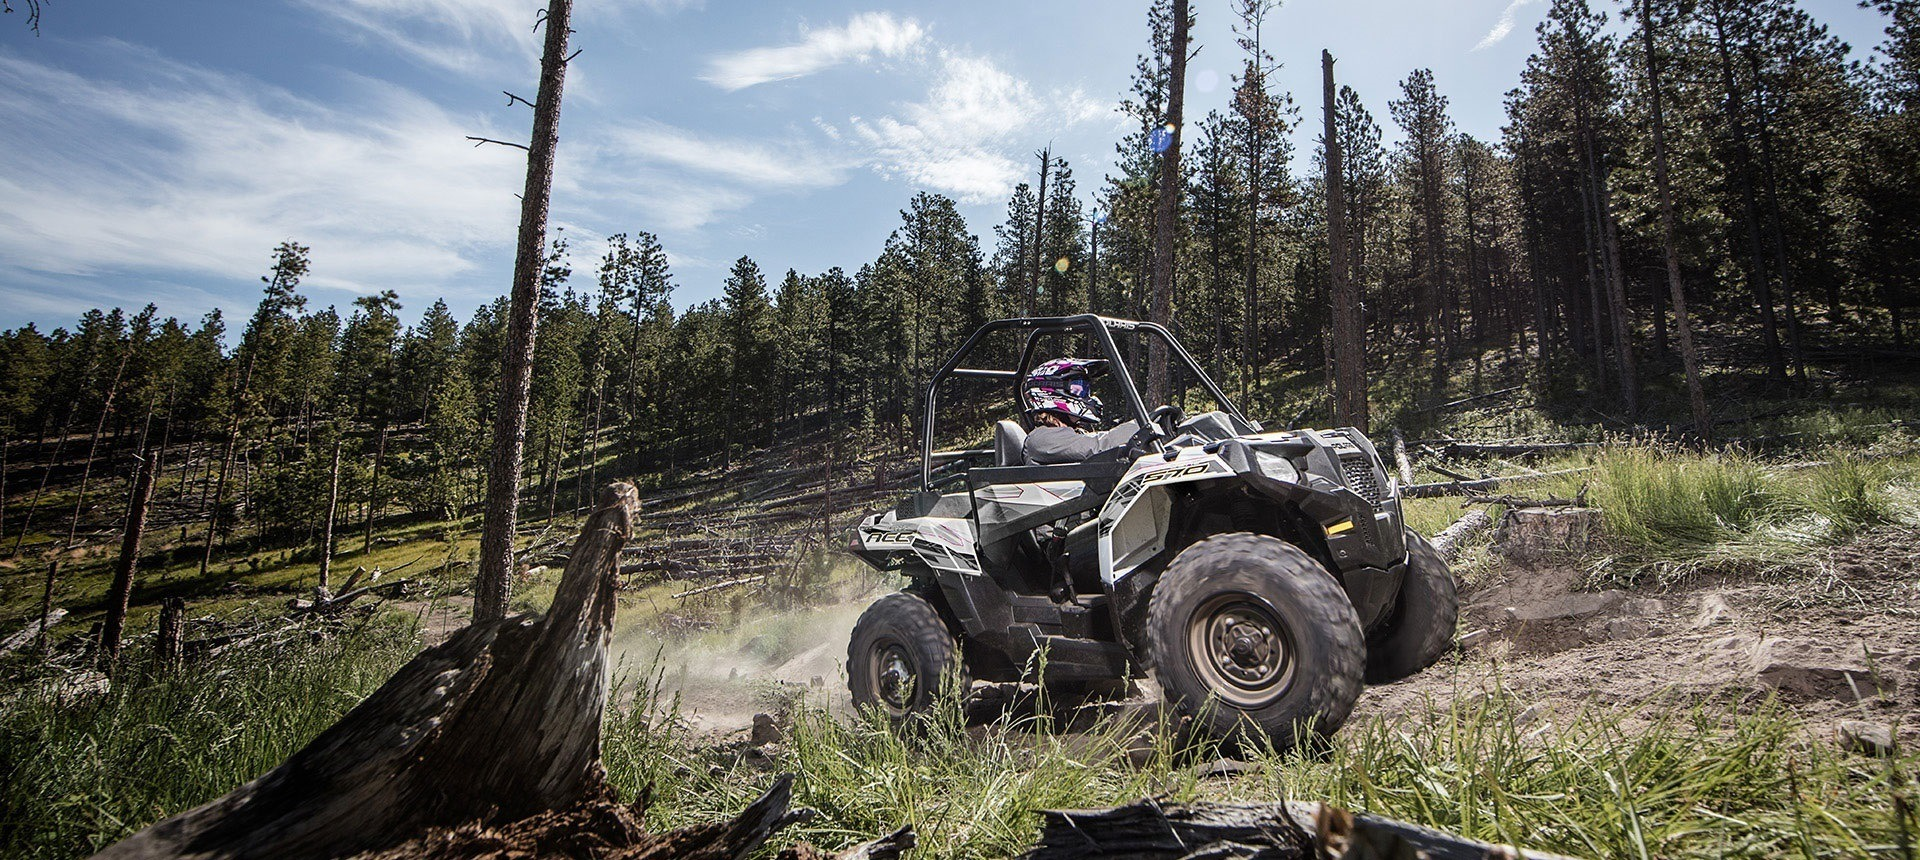 2019 Polaris Ace 570 EPS in San Marcos, California